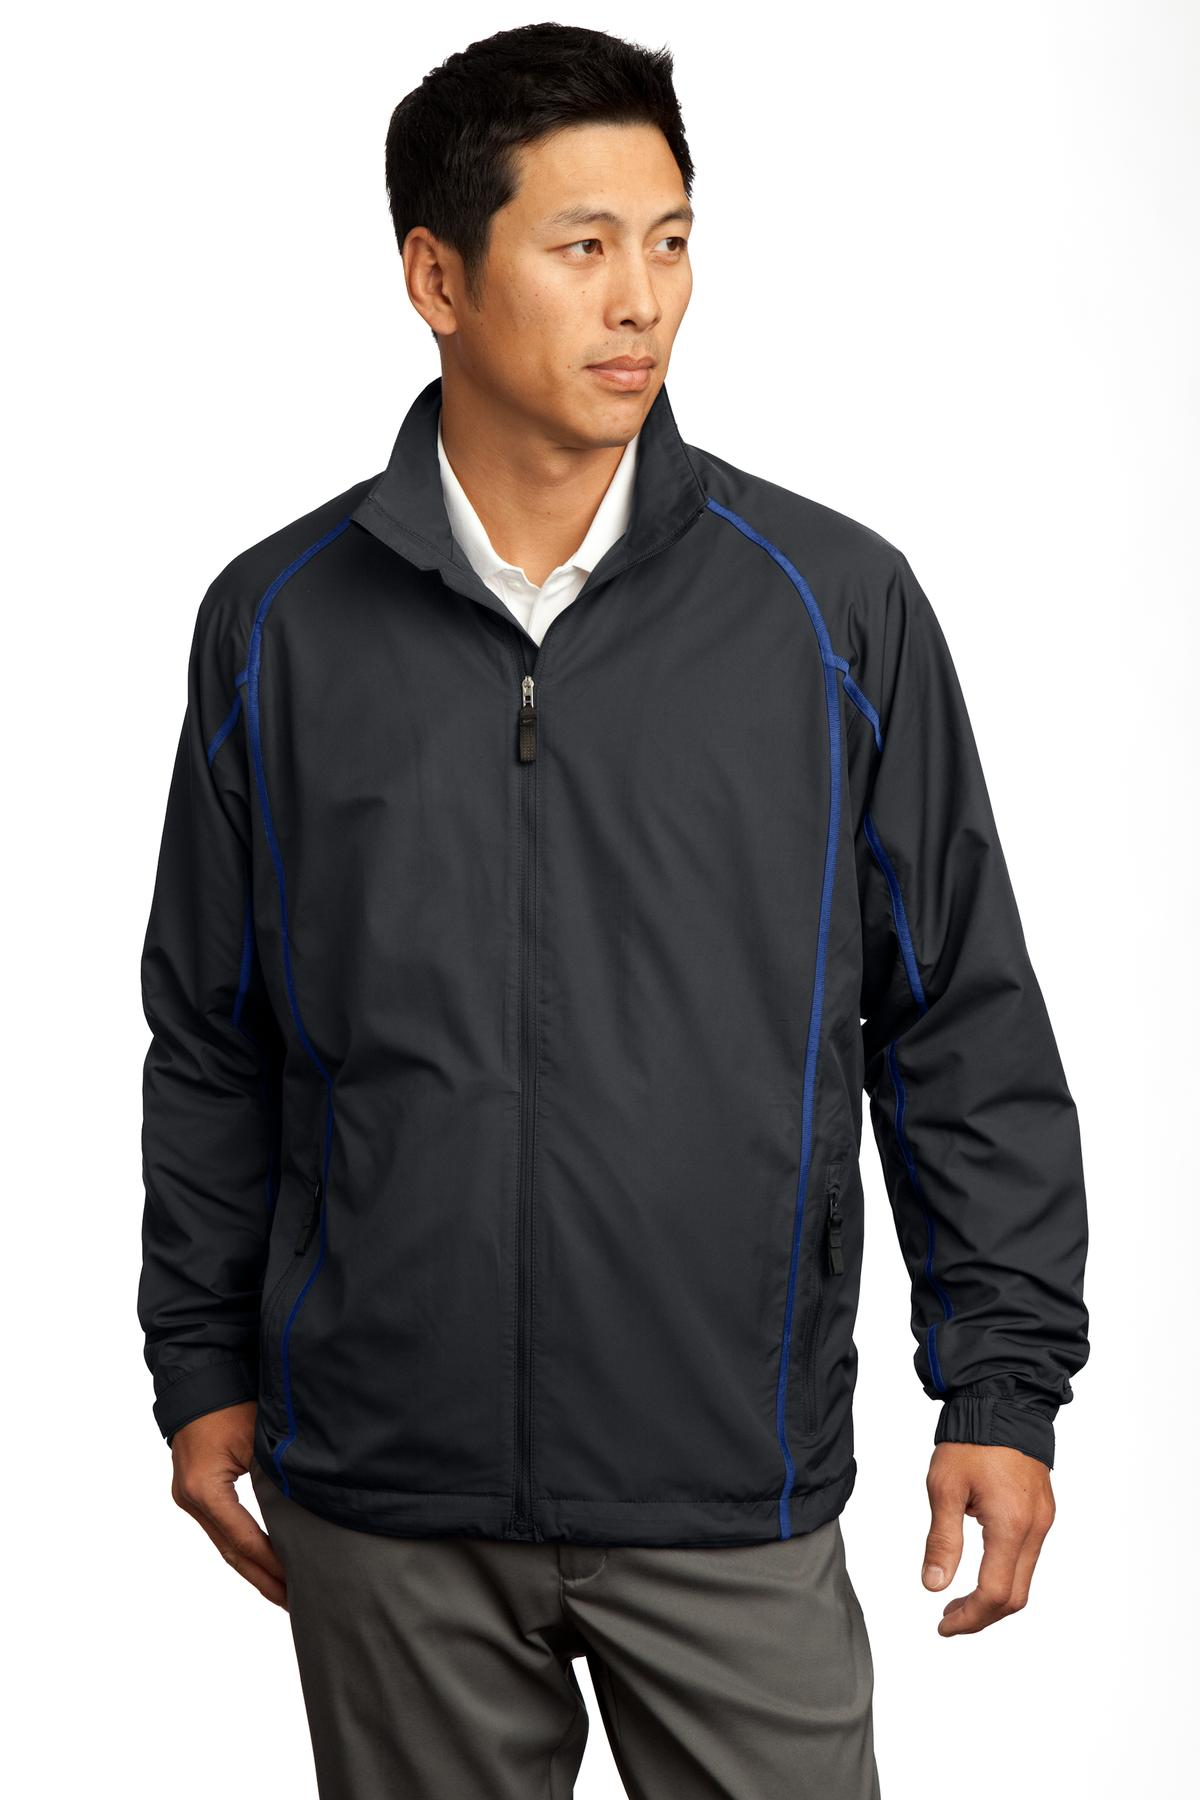 Outerwear-Golf-7